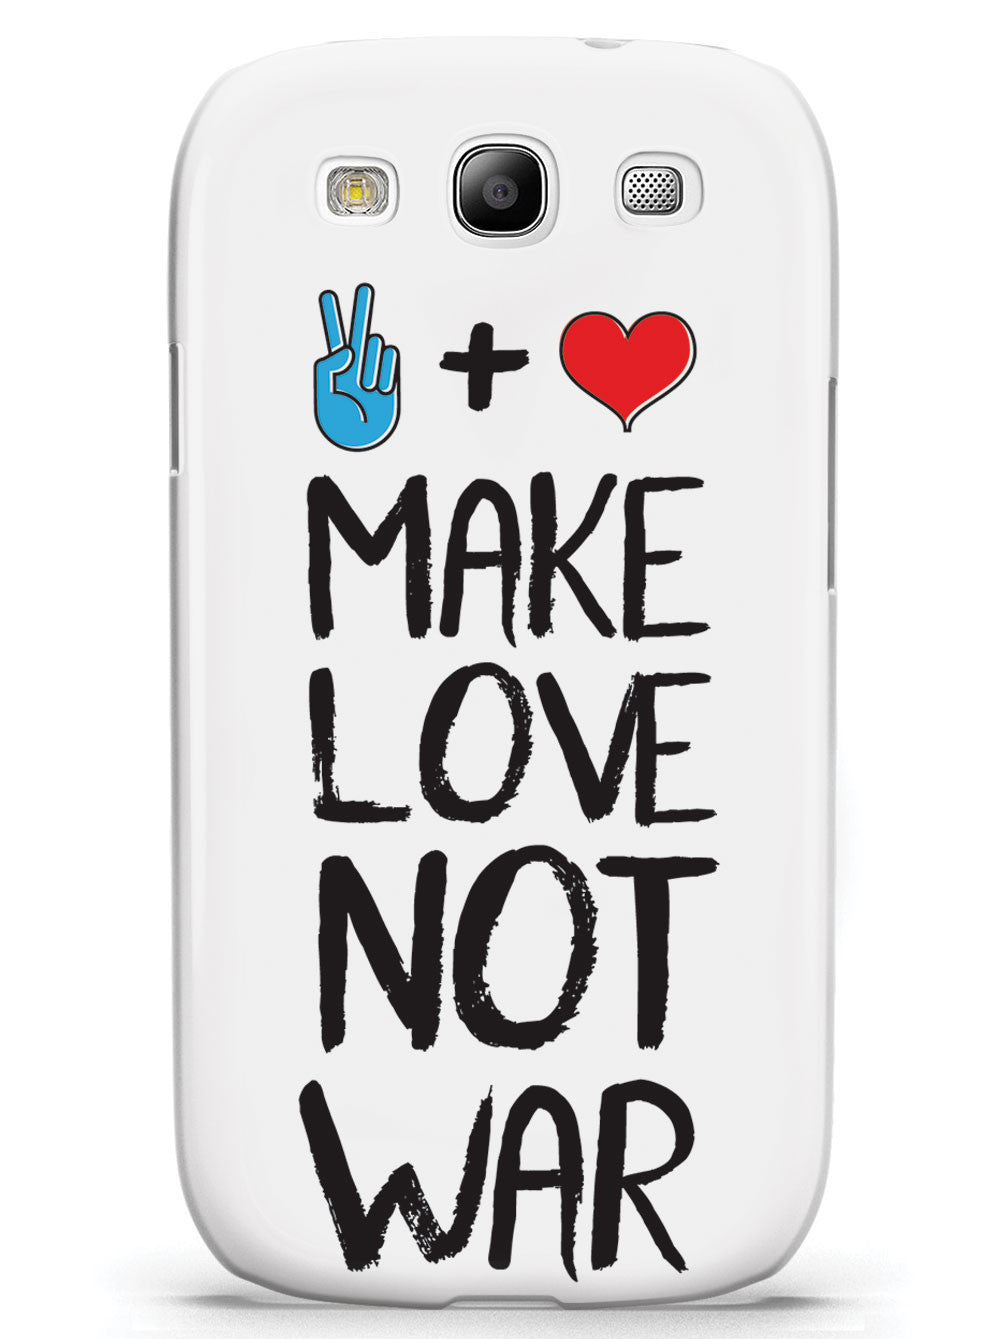 Make Love Not War - White Case